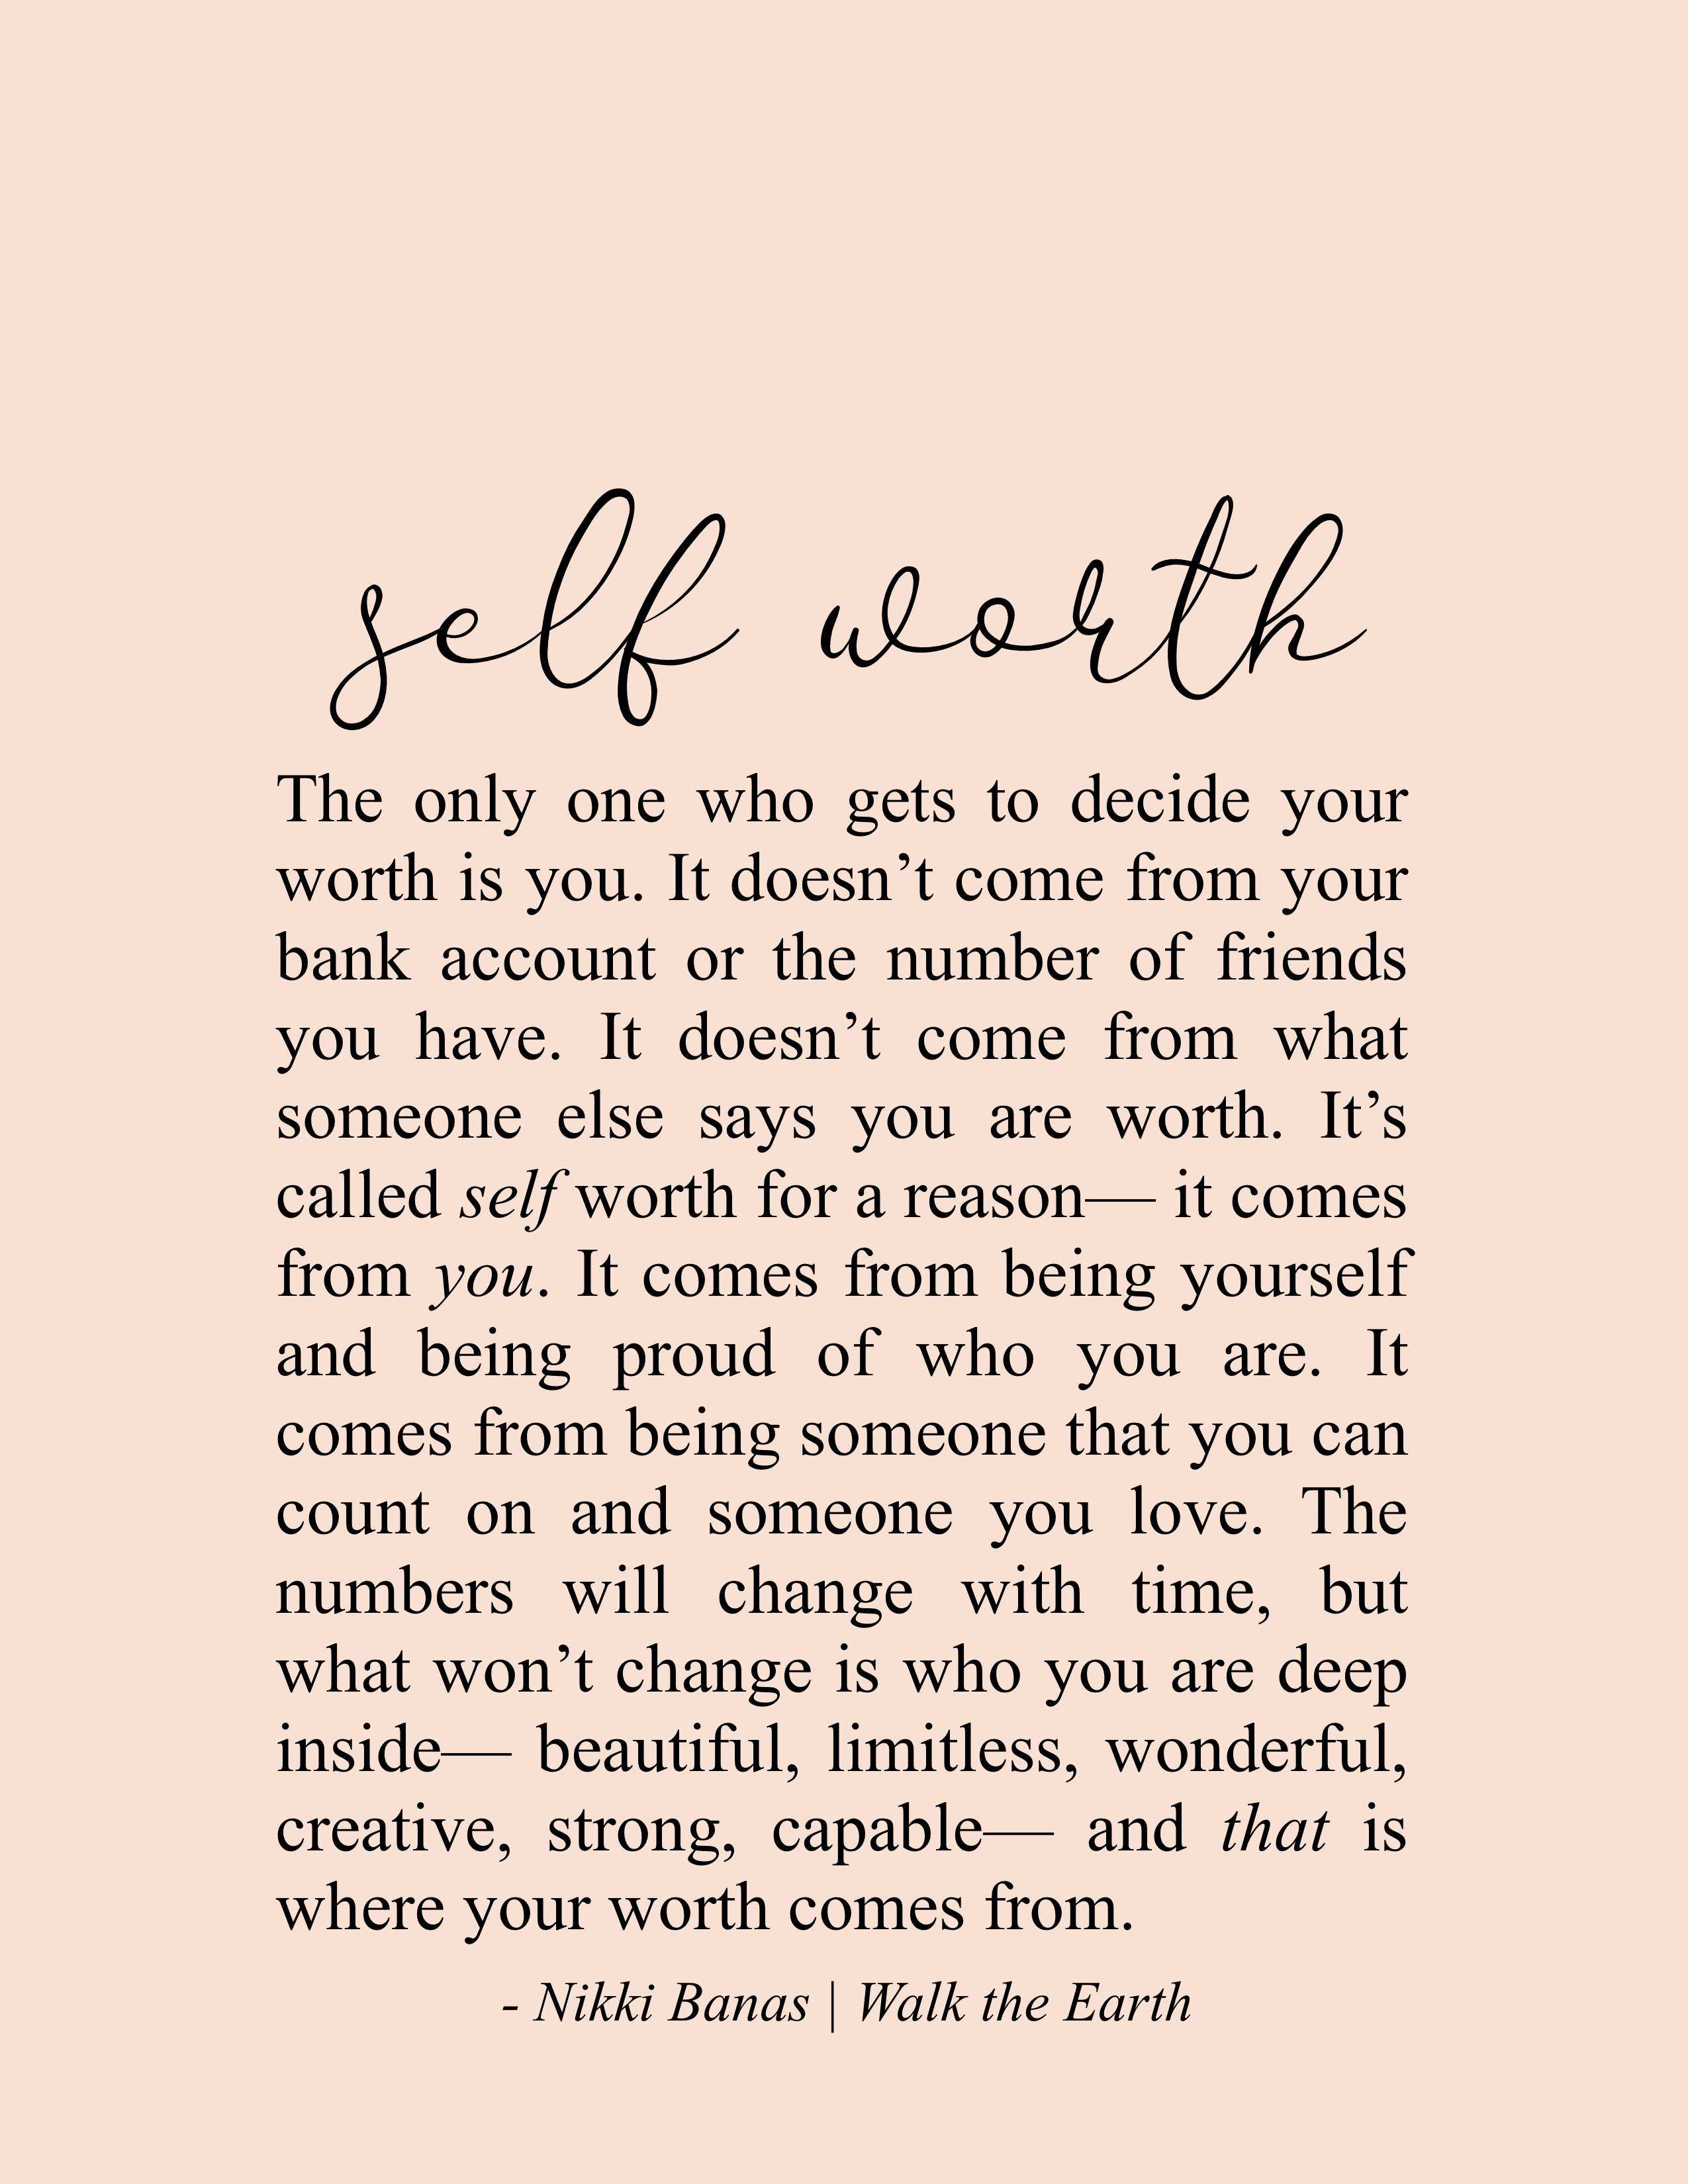 Self Worth Quotes Inspirational Motivational Be Yourself Nikki Banas Walk The Earth Poetry In 2020 Be Yourself Quotes Soul Love Quotes Self Love Quotes